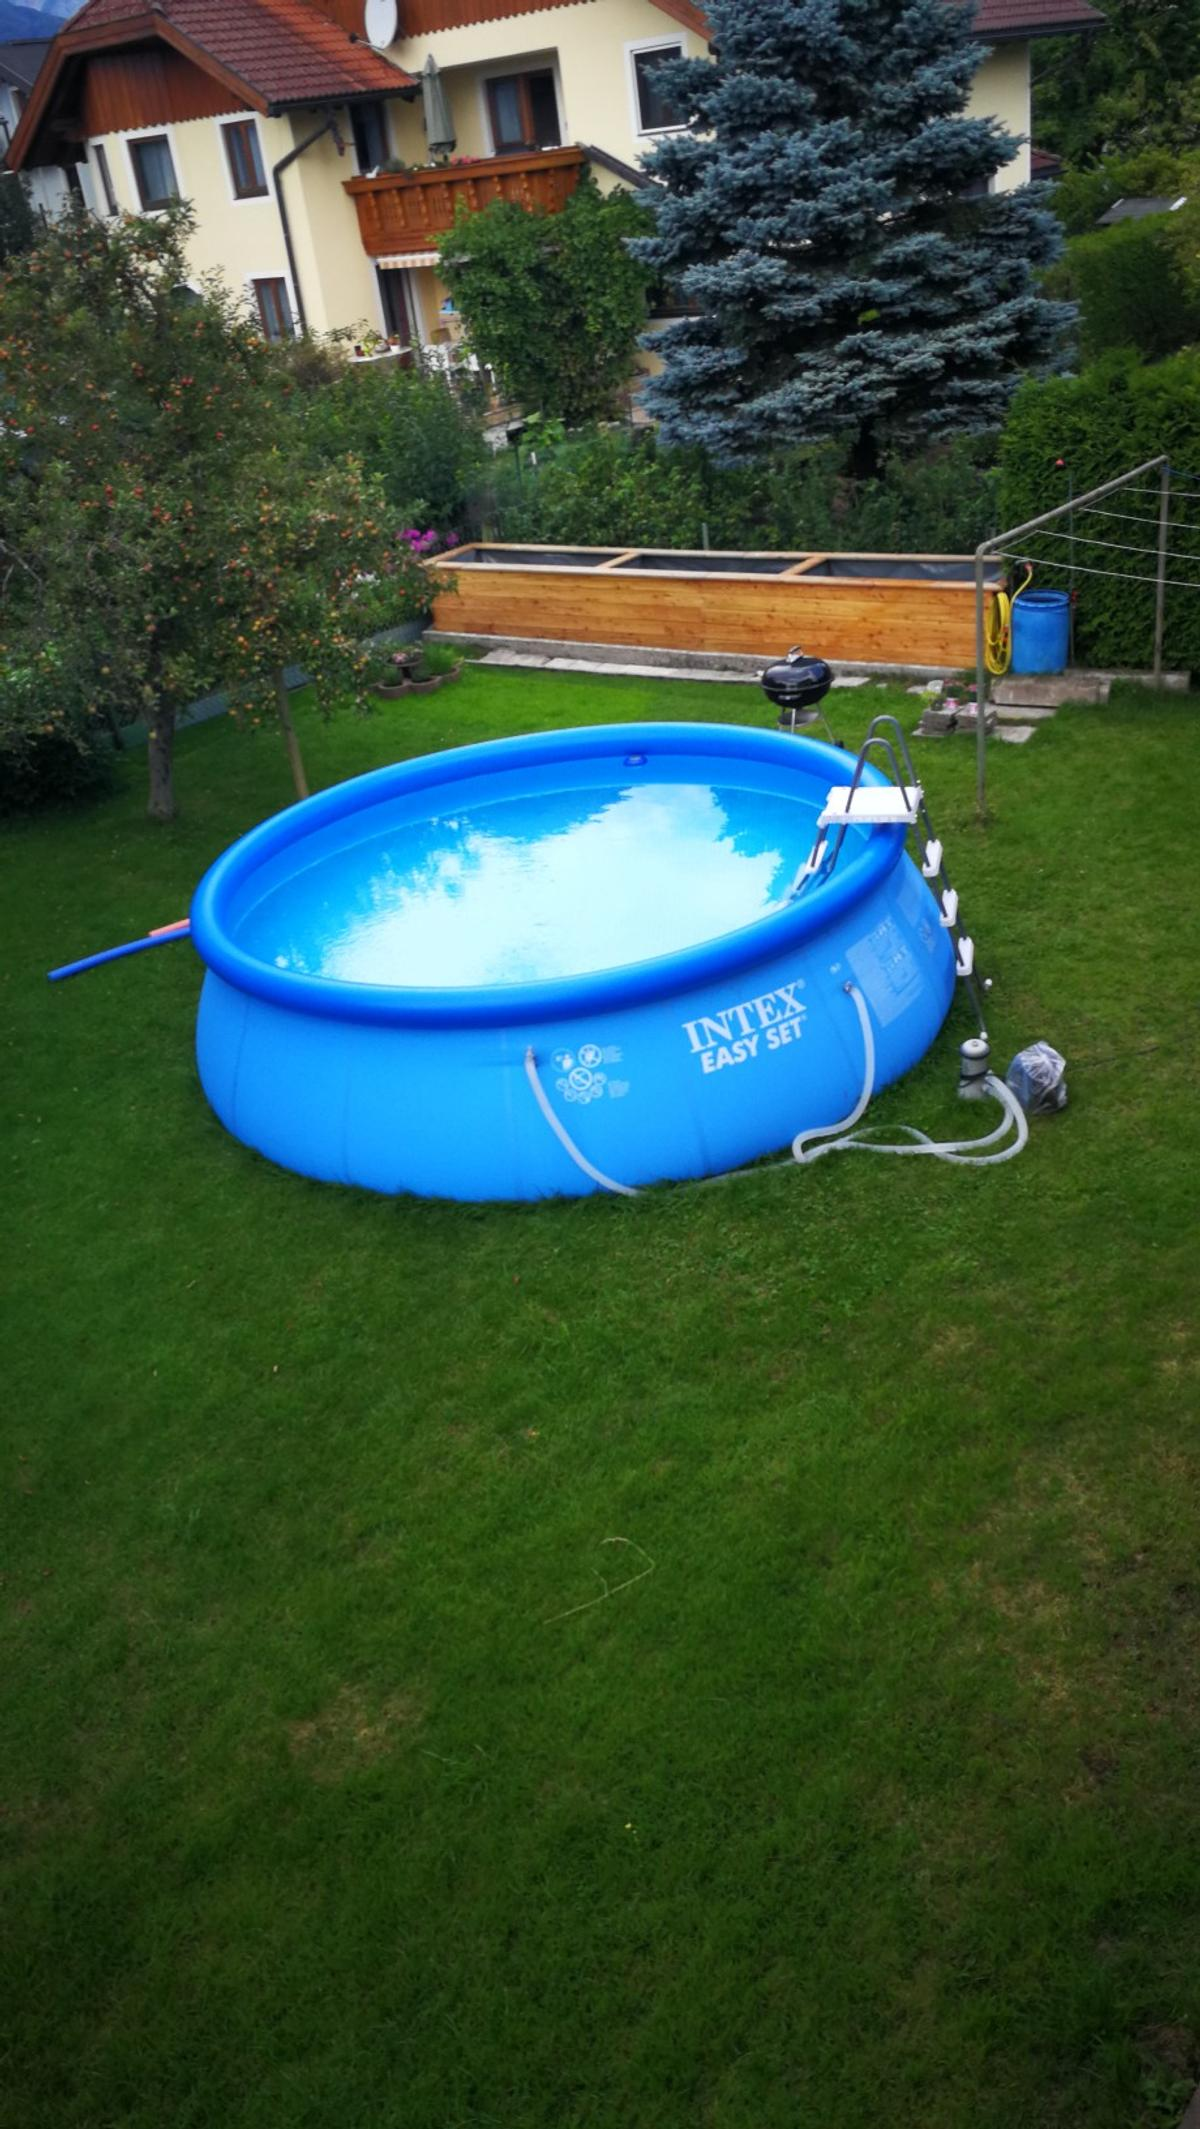 Chlor Pool Temperatur Intex Pool 457x122 Cm In 5400 Hallein For 199 00 For Sale Shpock